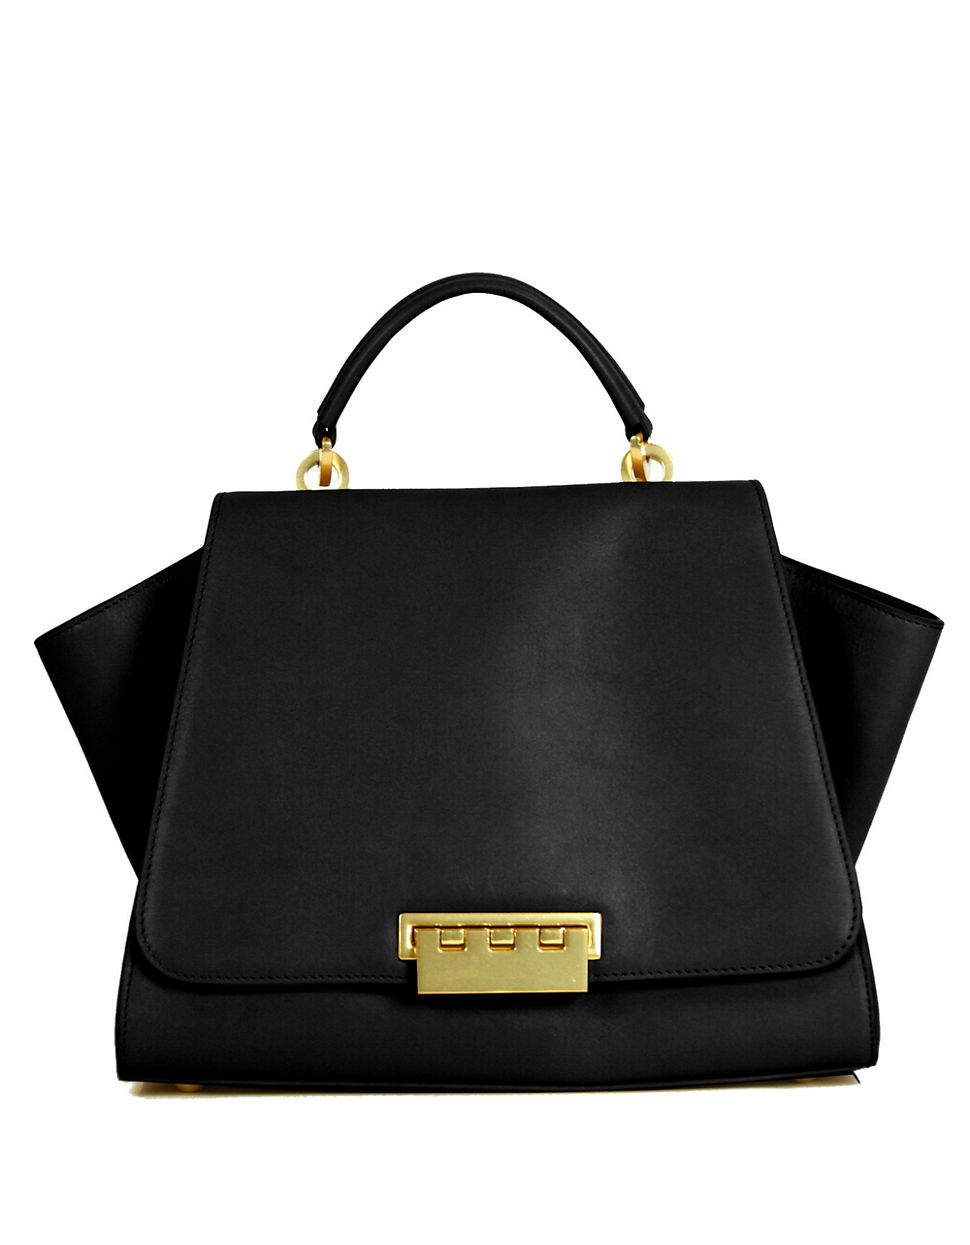 Zac Zac Posen Eartha Leather Soft Top Handle Bag In Black